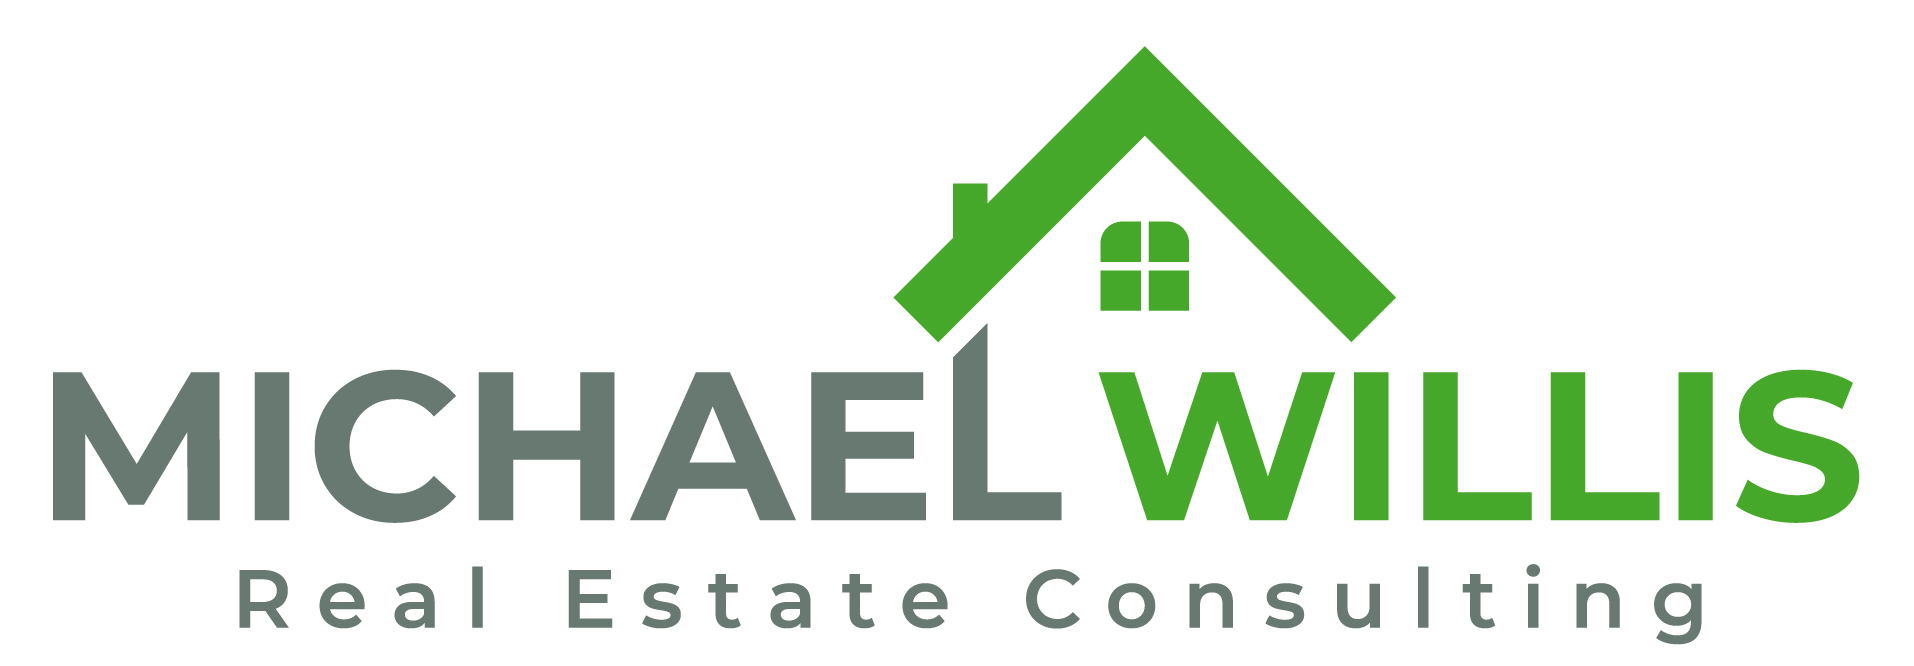 Michael Willis - Real Estate Consulting